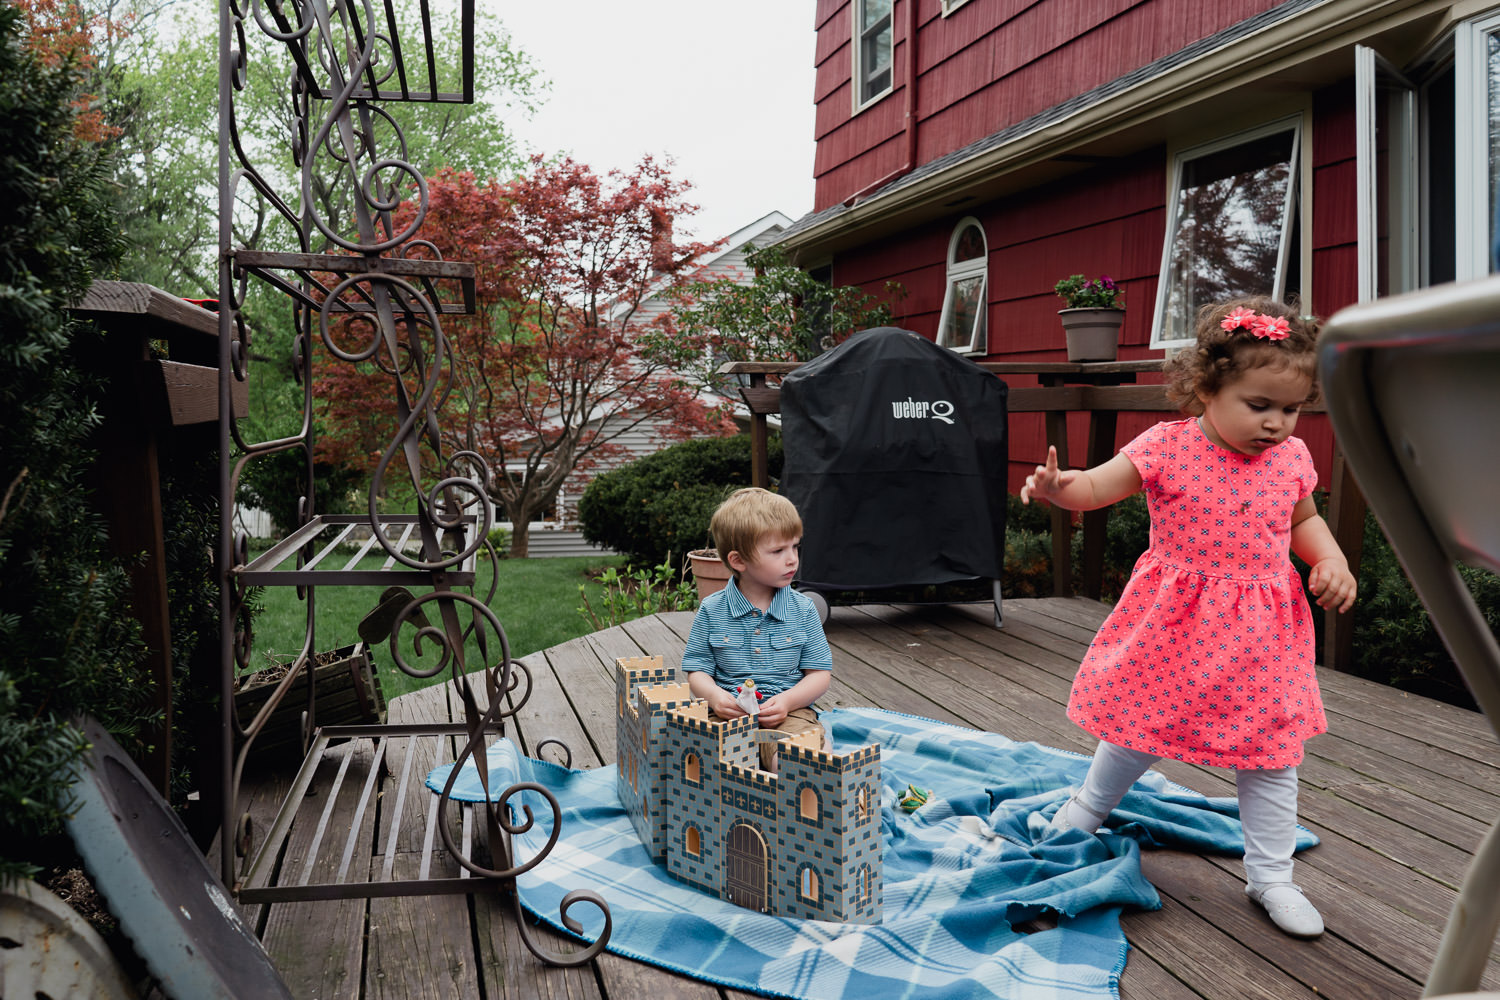 Two little kids play with a toy castle on a back deck.